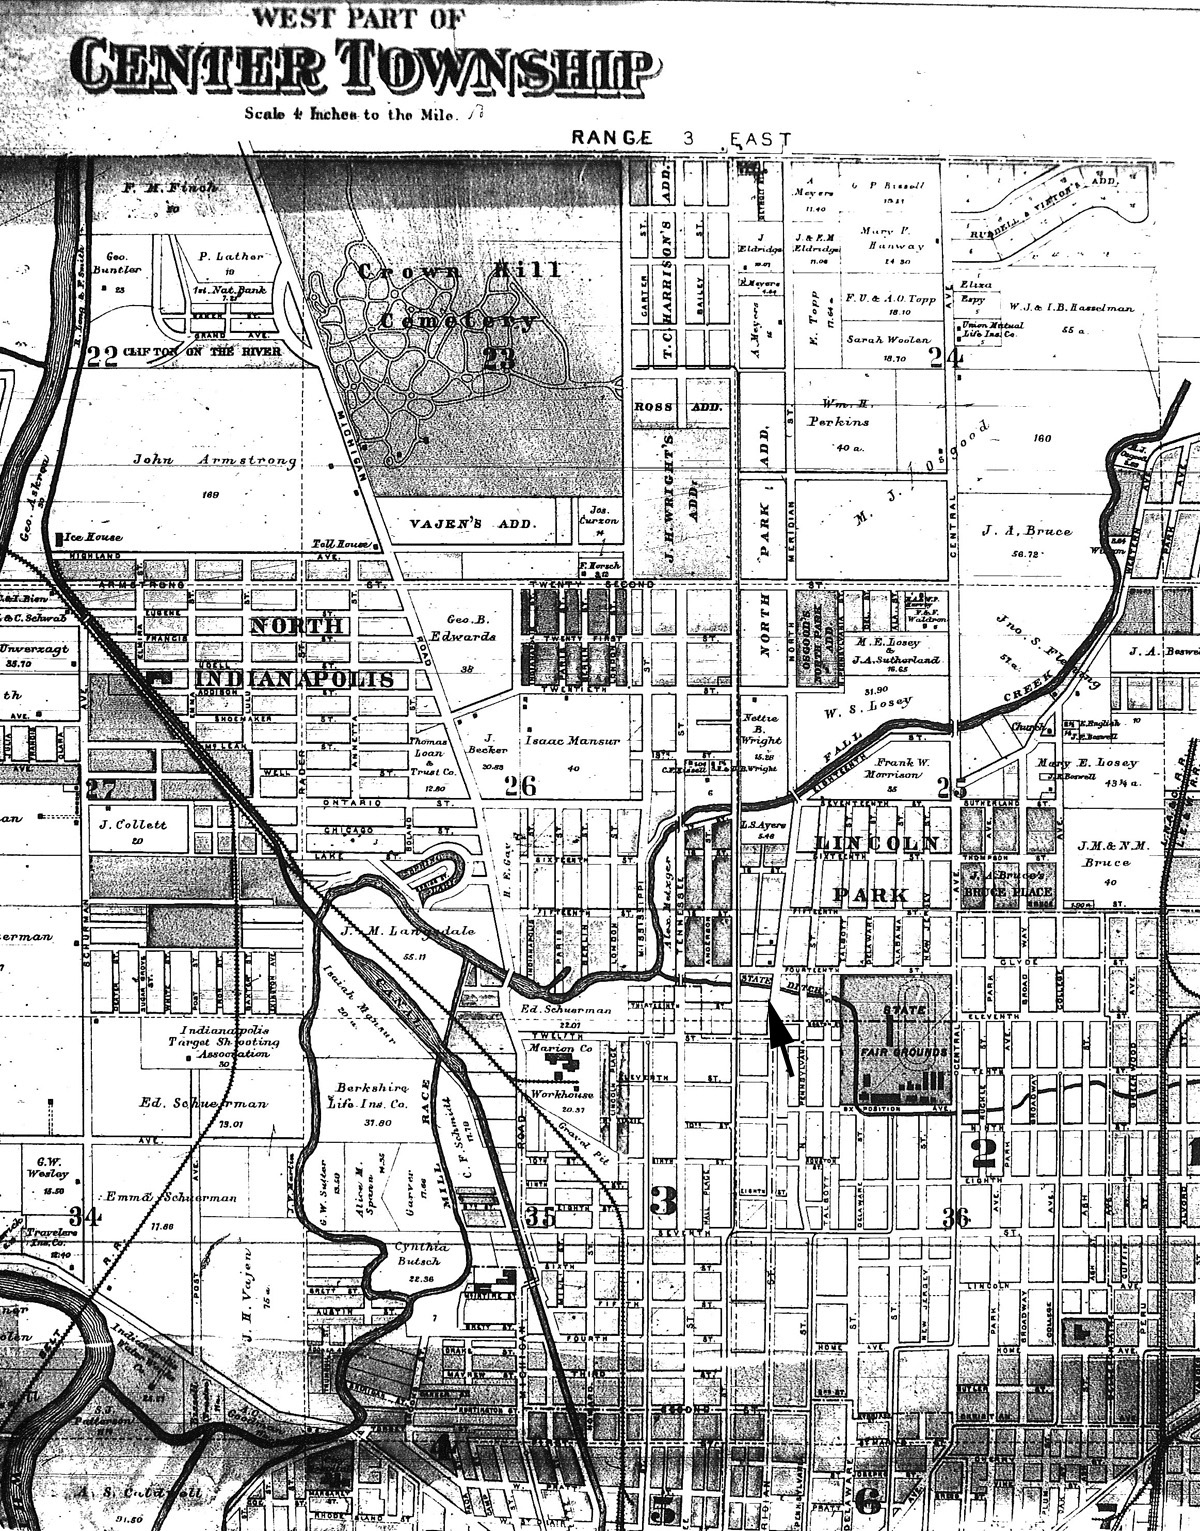 1889.Map_.W.pt_.Center Indianapolis State House Map on indianapolis indiana united states, indianapolis suburbs, indiana meth lab map, indianapolis townships, indianapolis water park, indianapolis in us, indianapolis skyline panoramic, indianapolis hotels, indianapolis road course, indianapolis city, indianapolis ghetto, indianapolis mall, indianapolis airport terminal, indianapolis warren central high school, indianapolis school buses, indianapolis news anchors, indianapolis trains, indianapolis gangs,